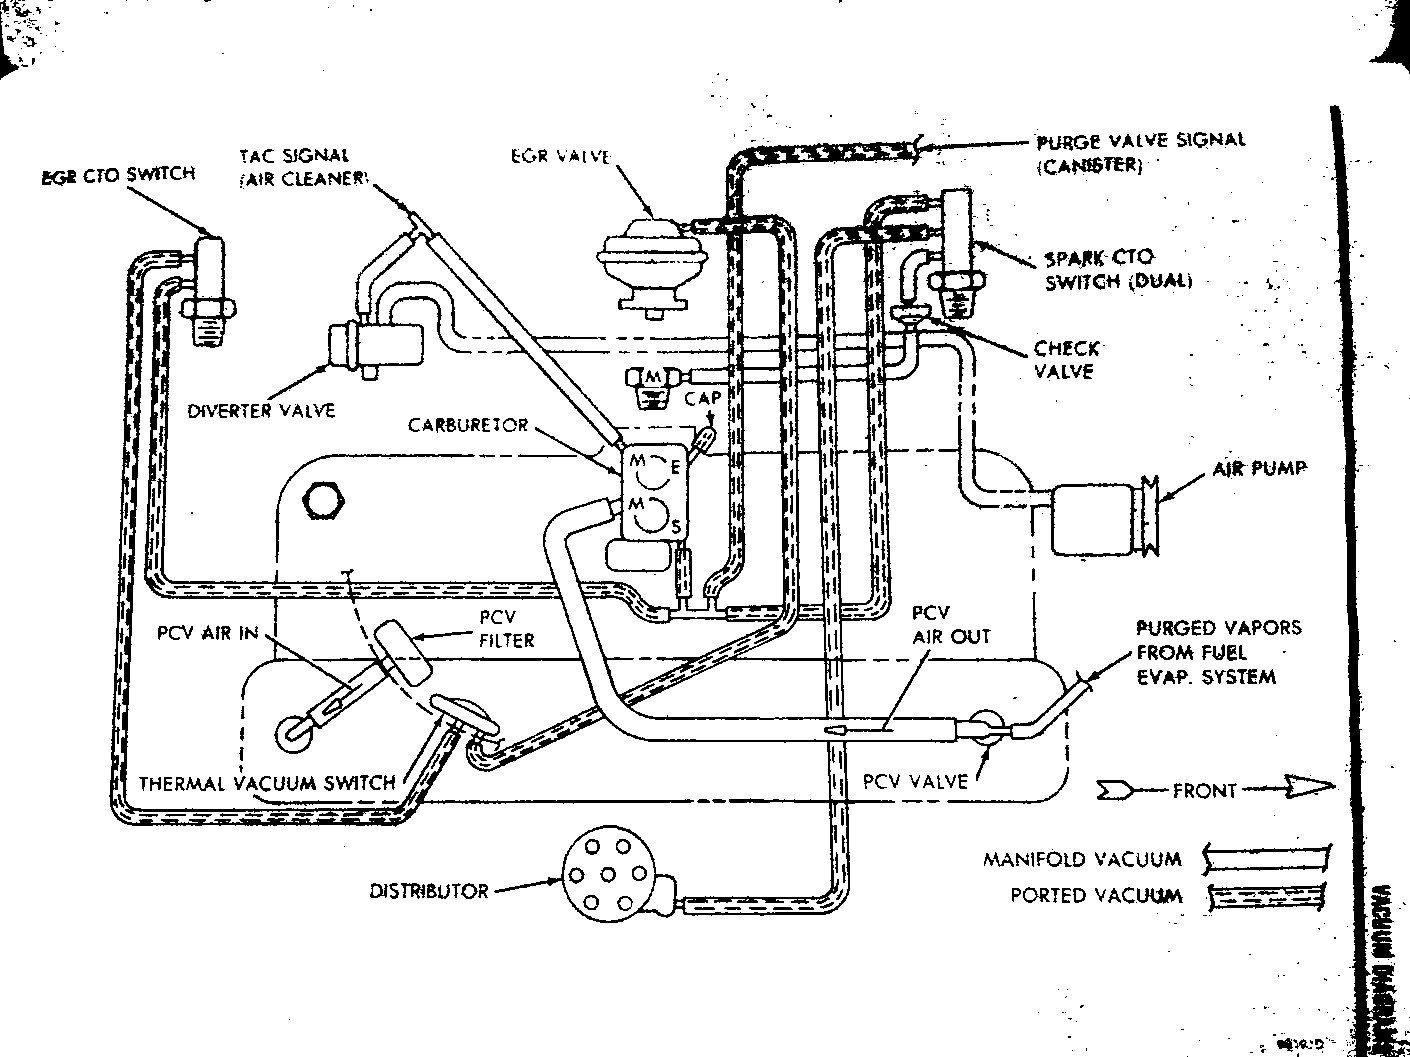 hight resolution of 1982 jeep 4 2 engine vacuum diagram wiring diagram sheet cj5 4 2 engine diagram